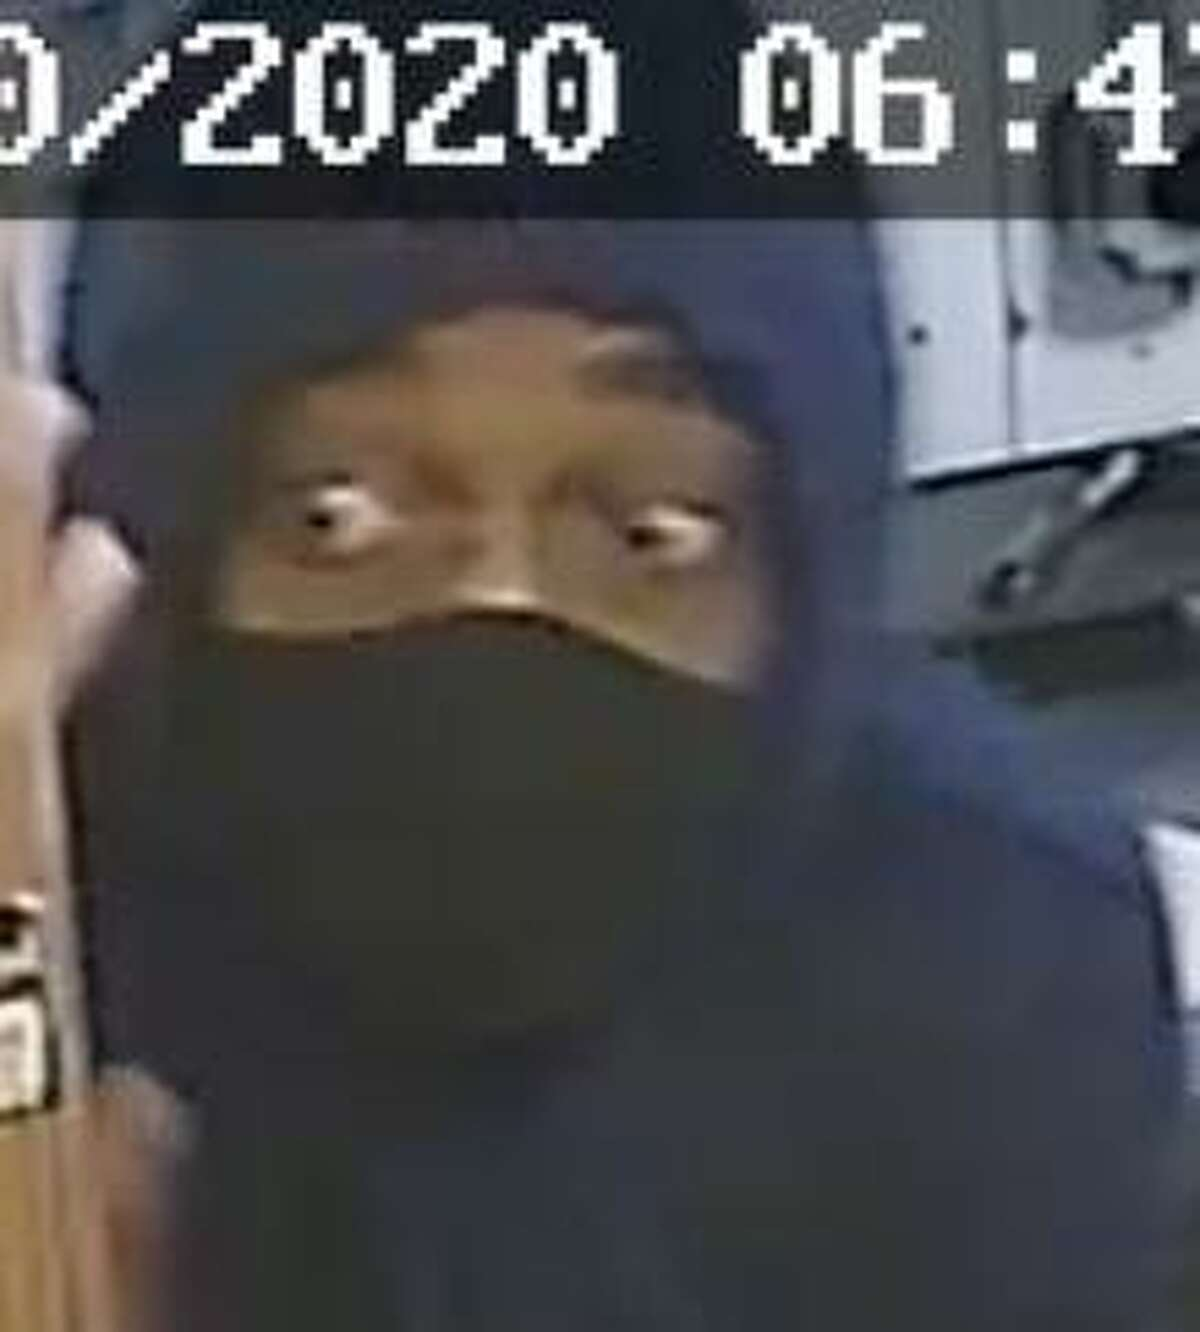 Police say this is one of the suspects involved in a recent armed robbery in Ansonia, Conn., on Tuesday, Oct. 20, 2020.